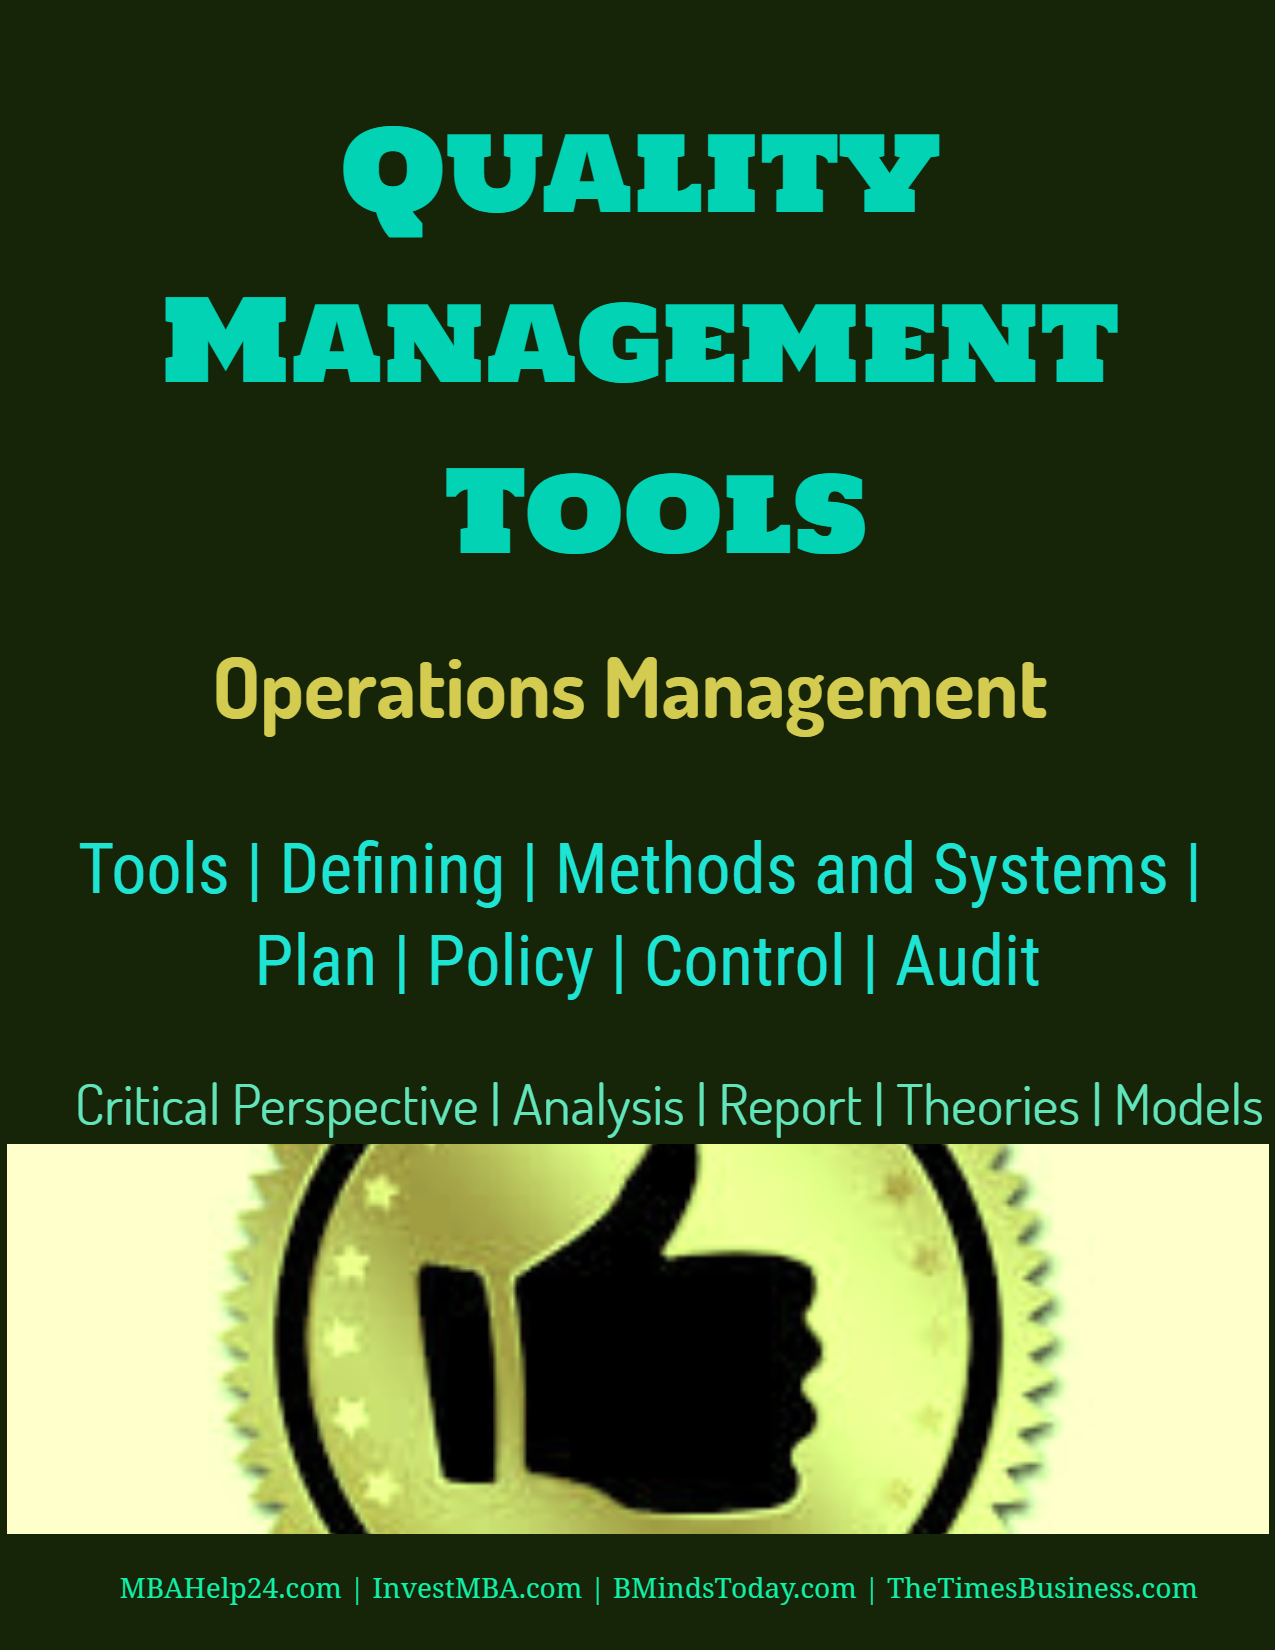 Total quality management tools quality management Quality Management Tools | Methods and Systems | Plan | Control | Audit Total quality management tools